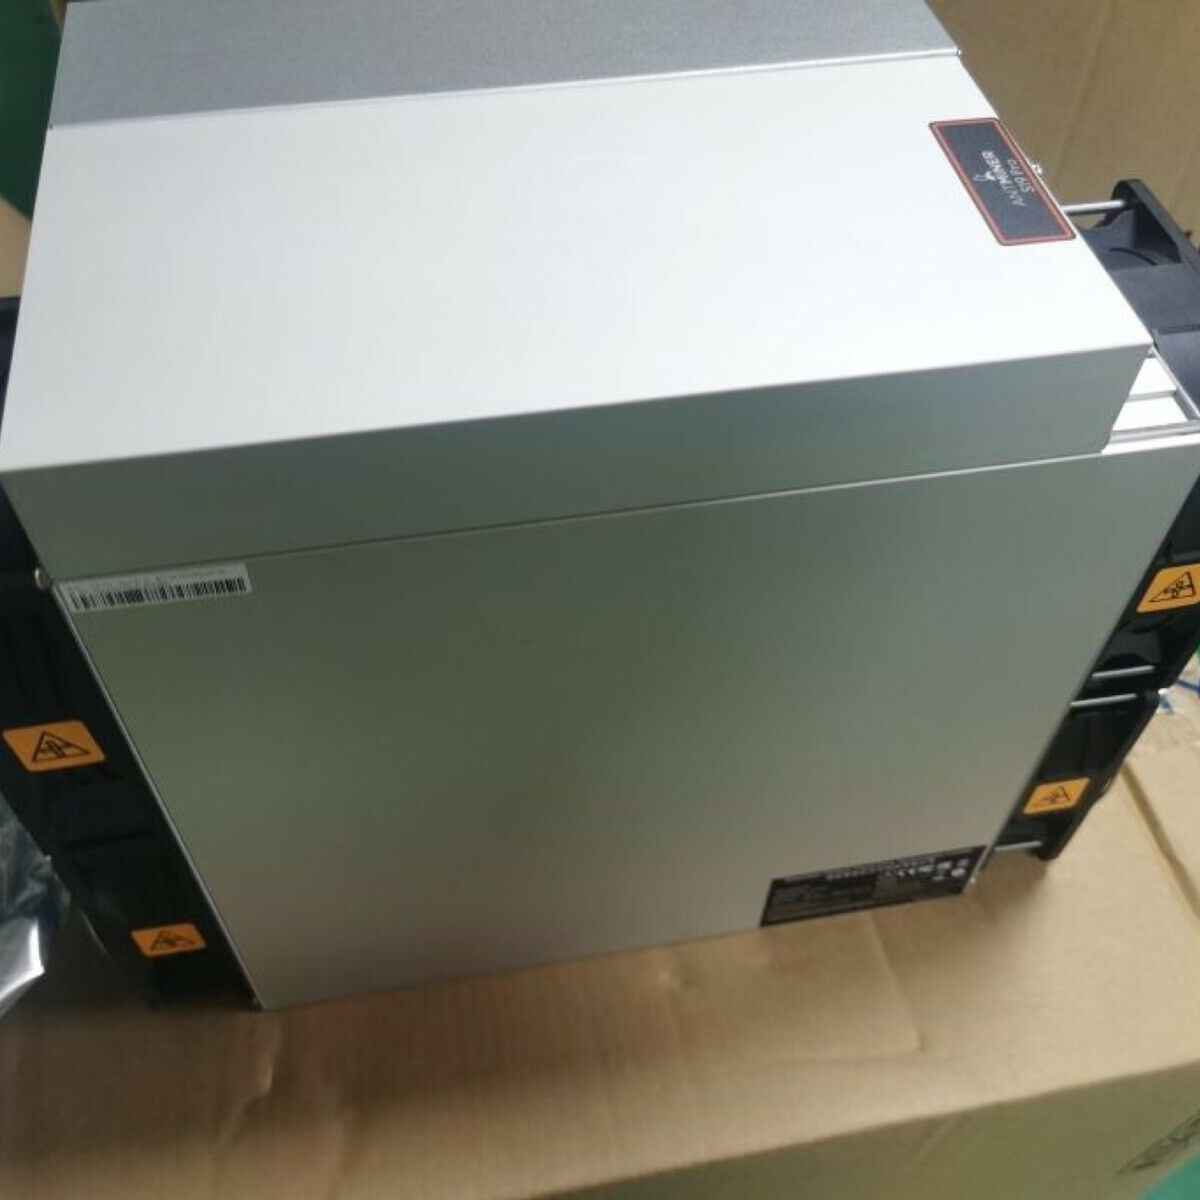 In Stock New Antminer S19 Pro Hashrate 110Th/s,Antminer S19 Hashrate 95Th/s